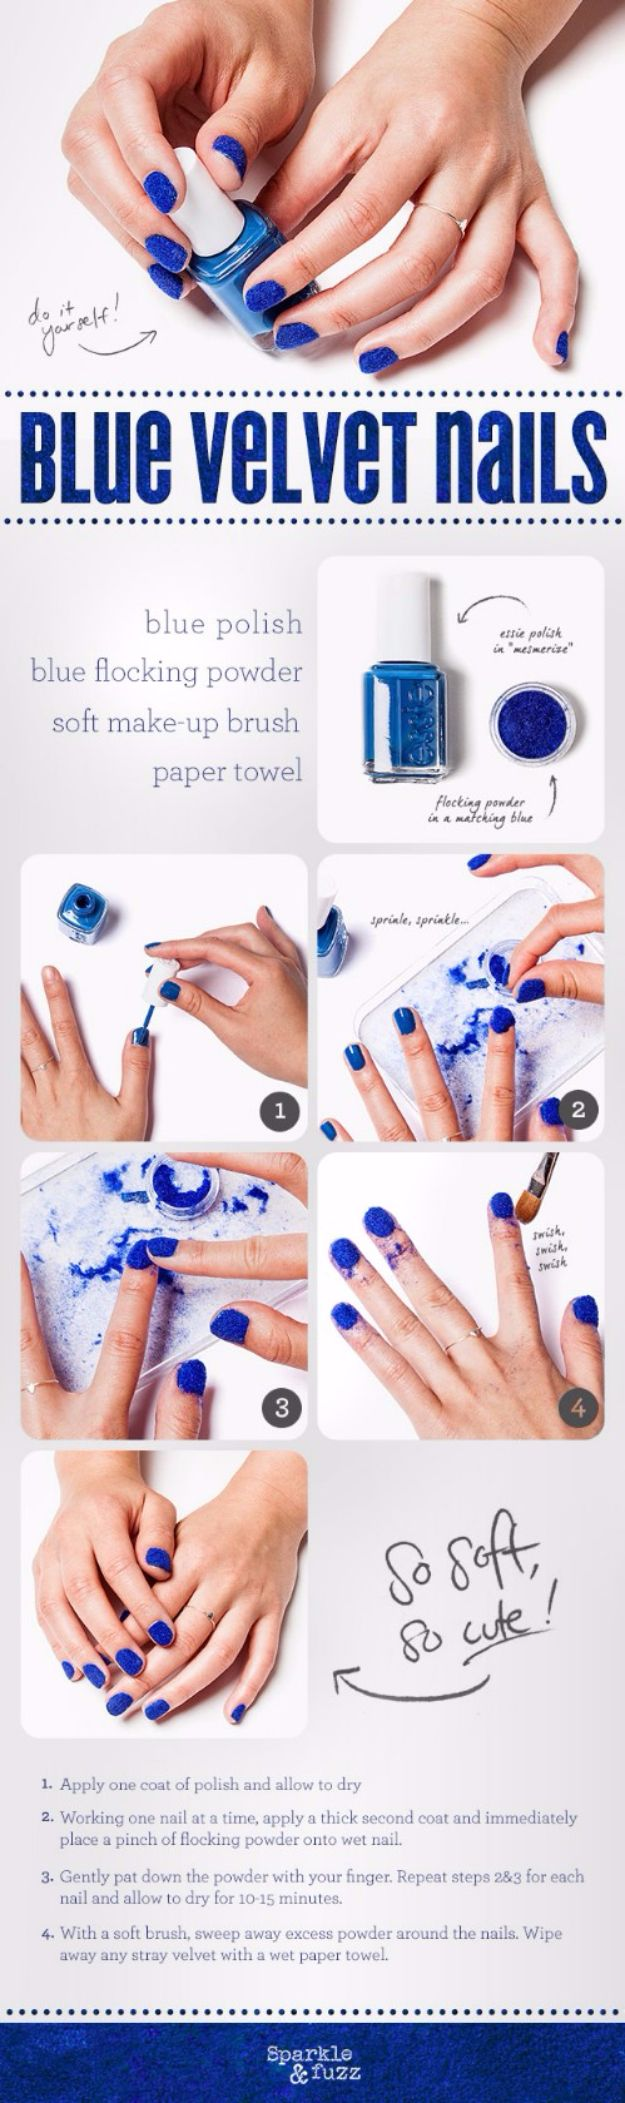 Quick Nail Art Ideas - Blue Velvet Nails - Easy Step by Step Nail Designs With Tutorials and Instructions - Simple Photos Show You How To Get A Perfect Manicure at Home - Cool Beauty Tips and Tricks for Women and Teens